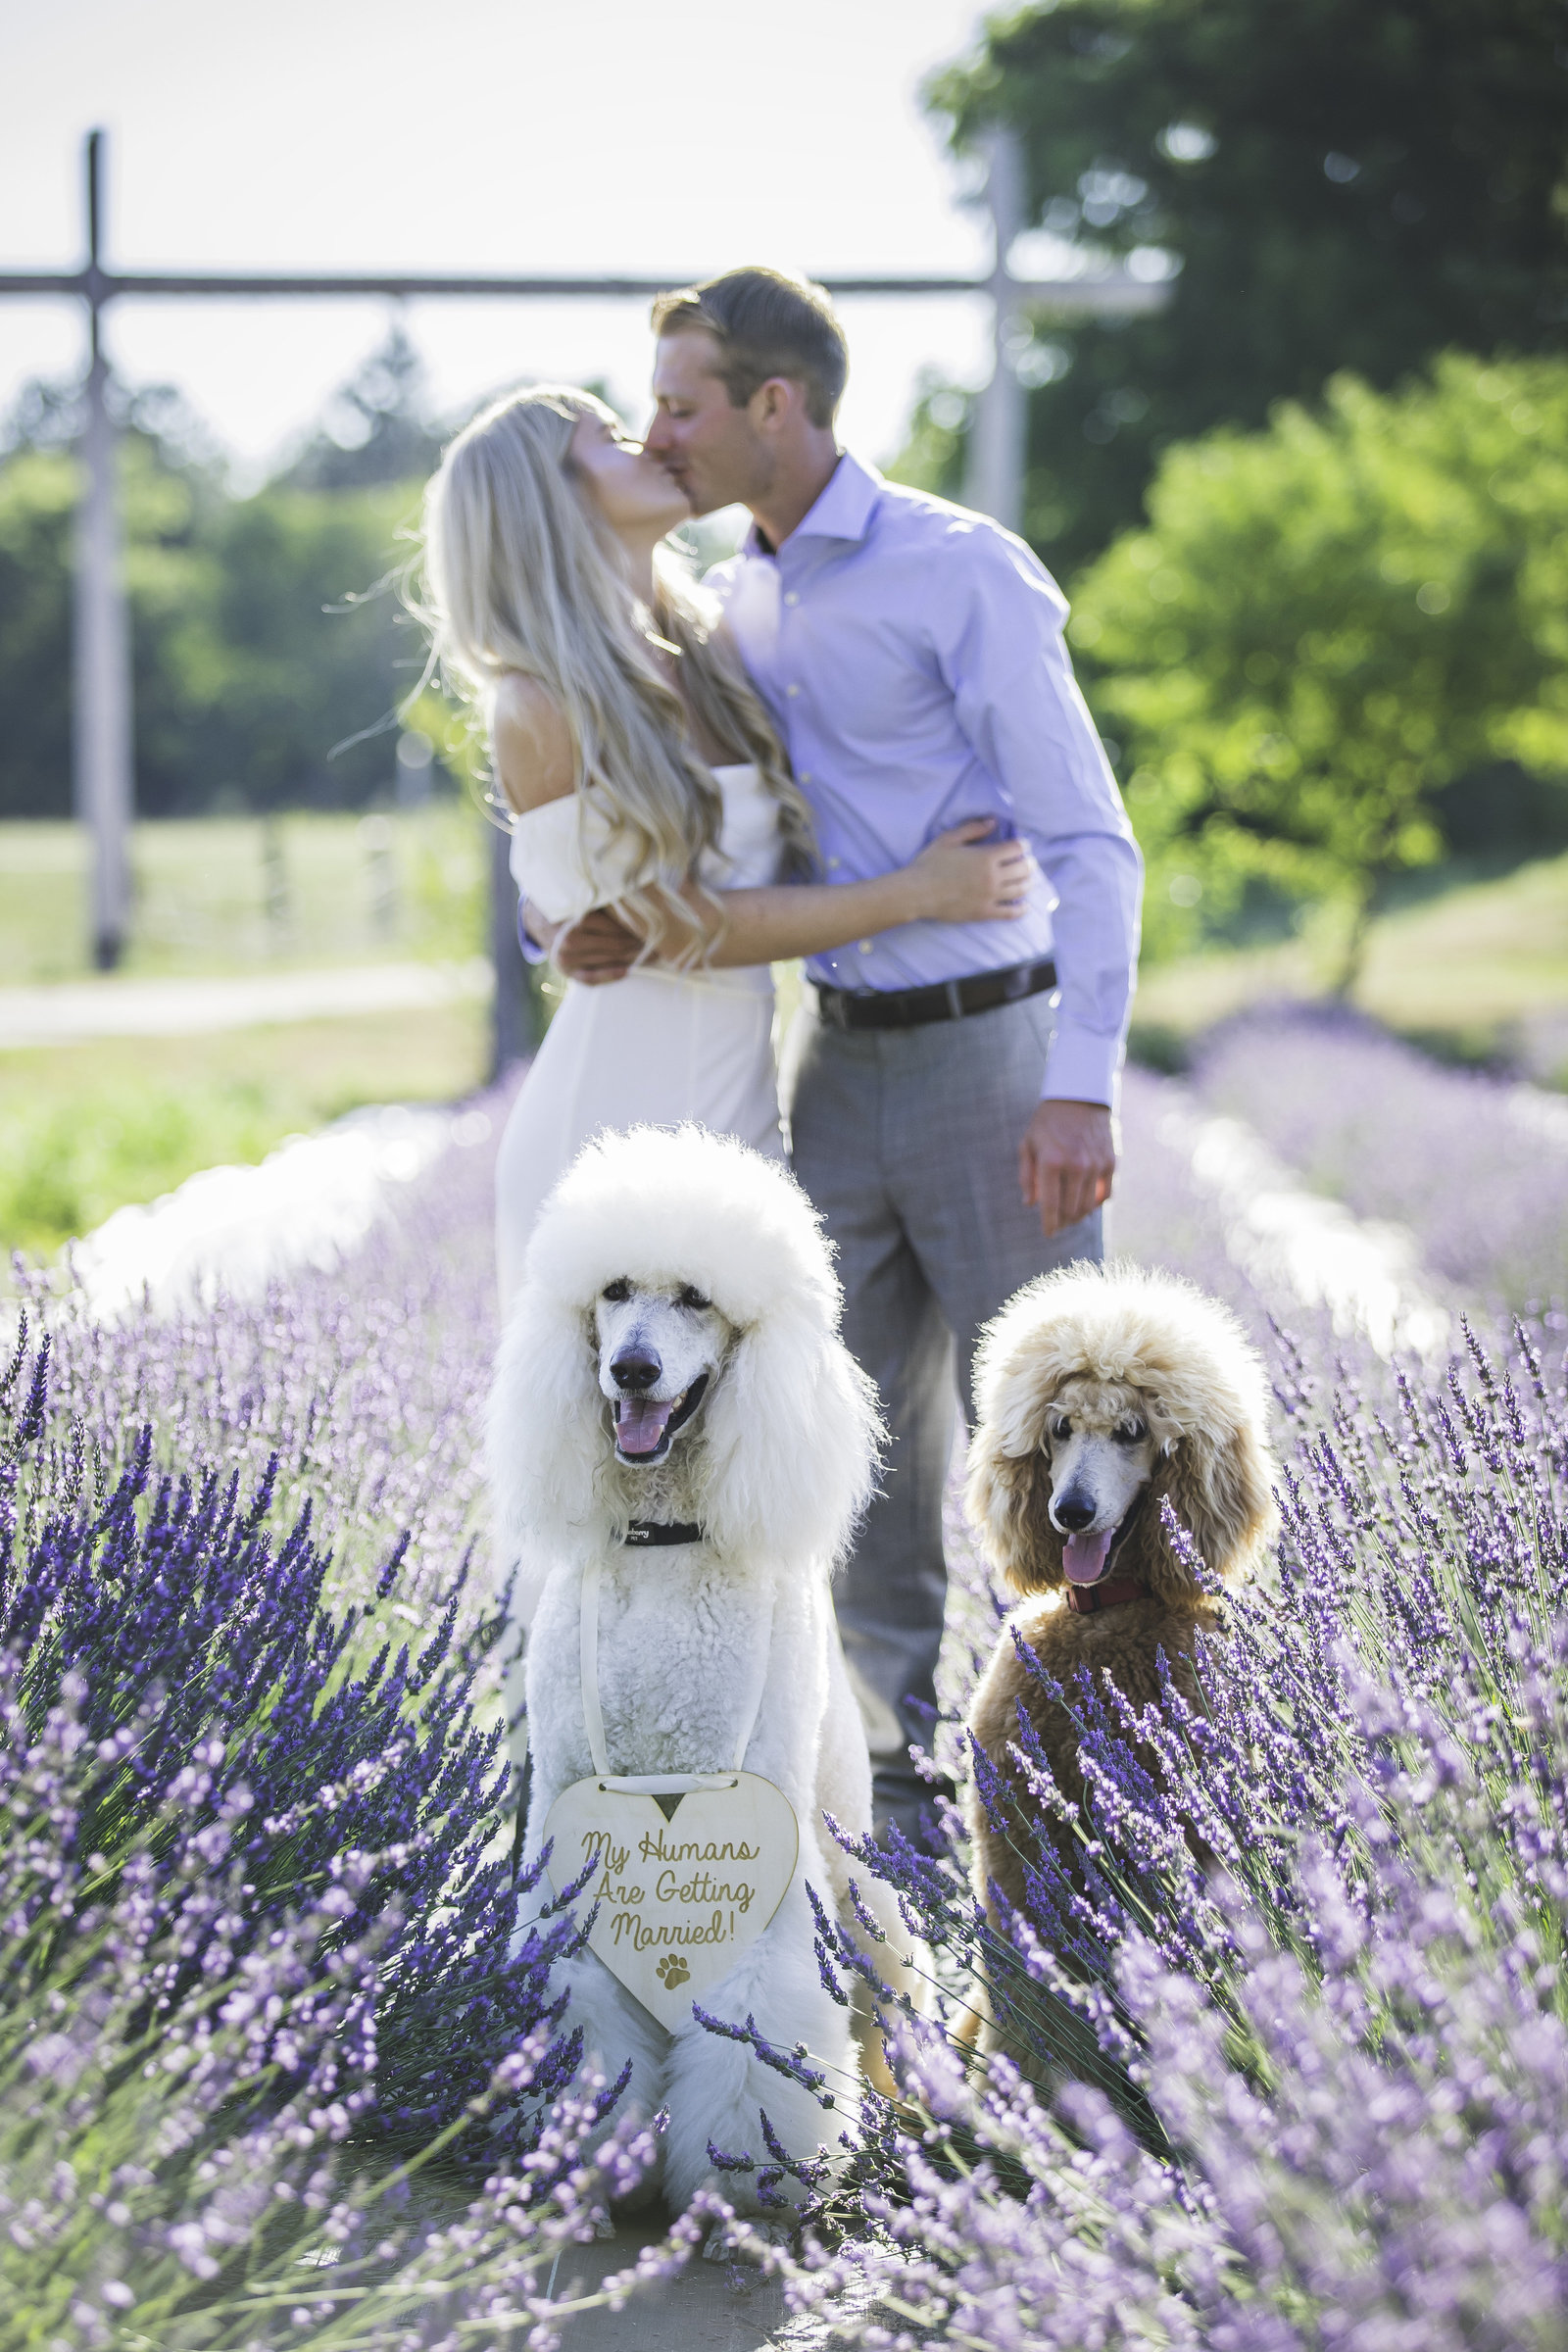 Engagement session taking place in Greenville MI at Lavender Vista with their two poodle pups